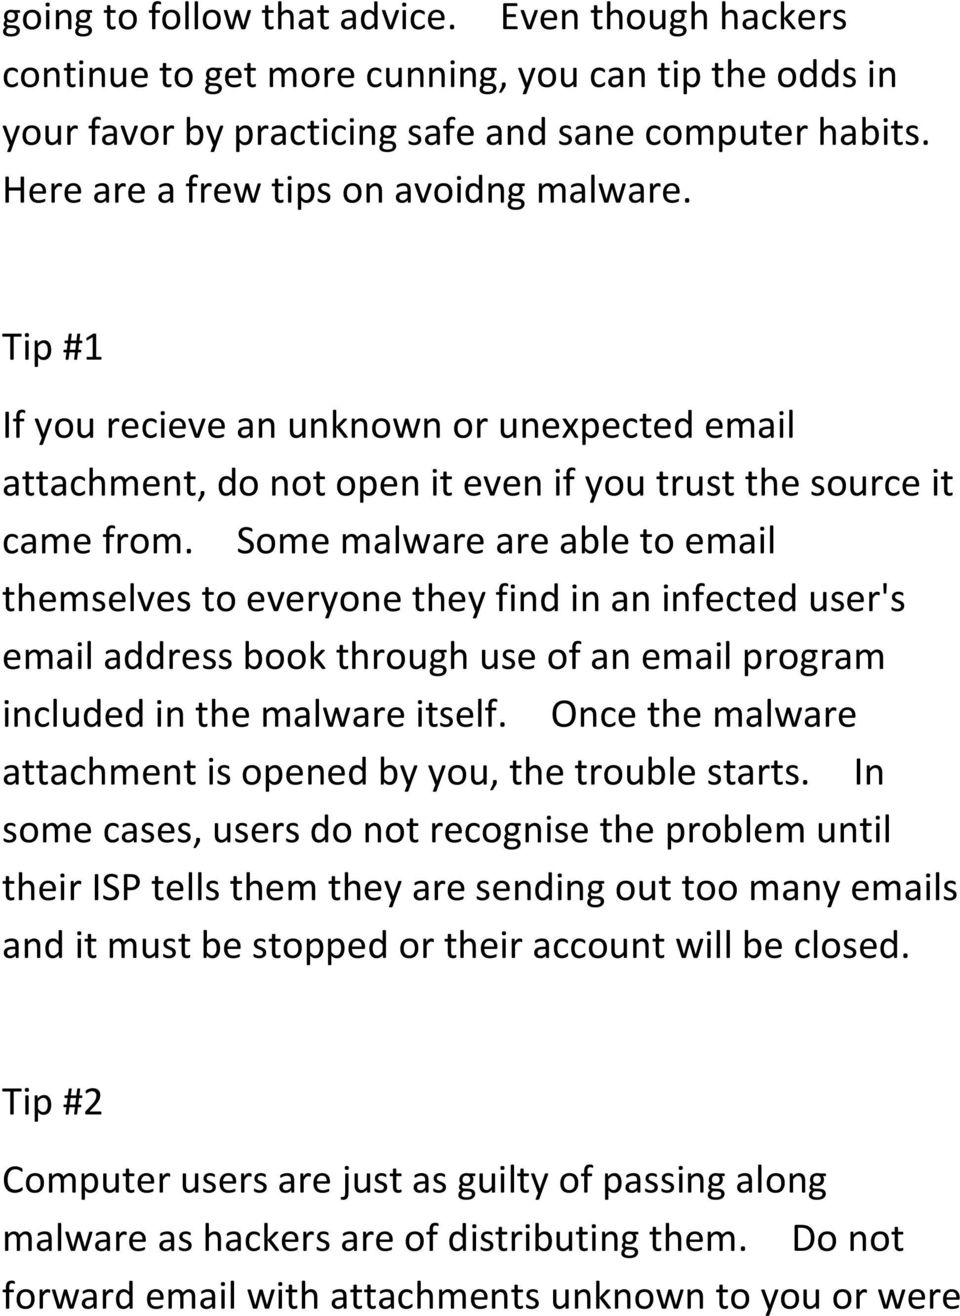 Some malware are able to email themselves to everyone they find in an infected user's email address book through use of an email program included in the malware itself.